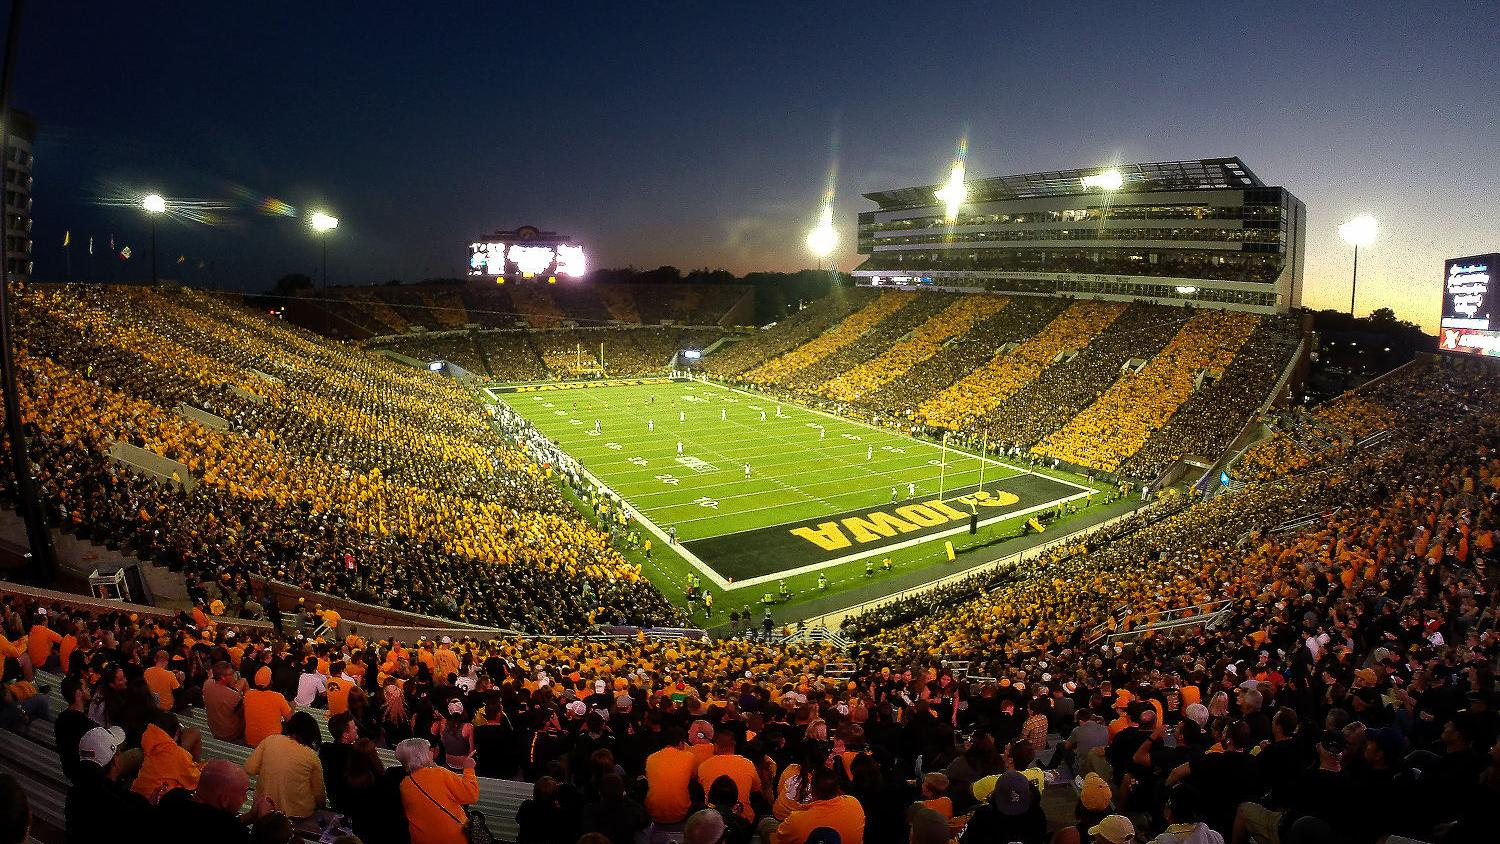 Night games likely for Hawkeyes, but undetermined